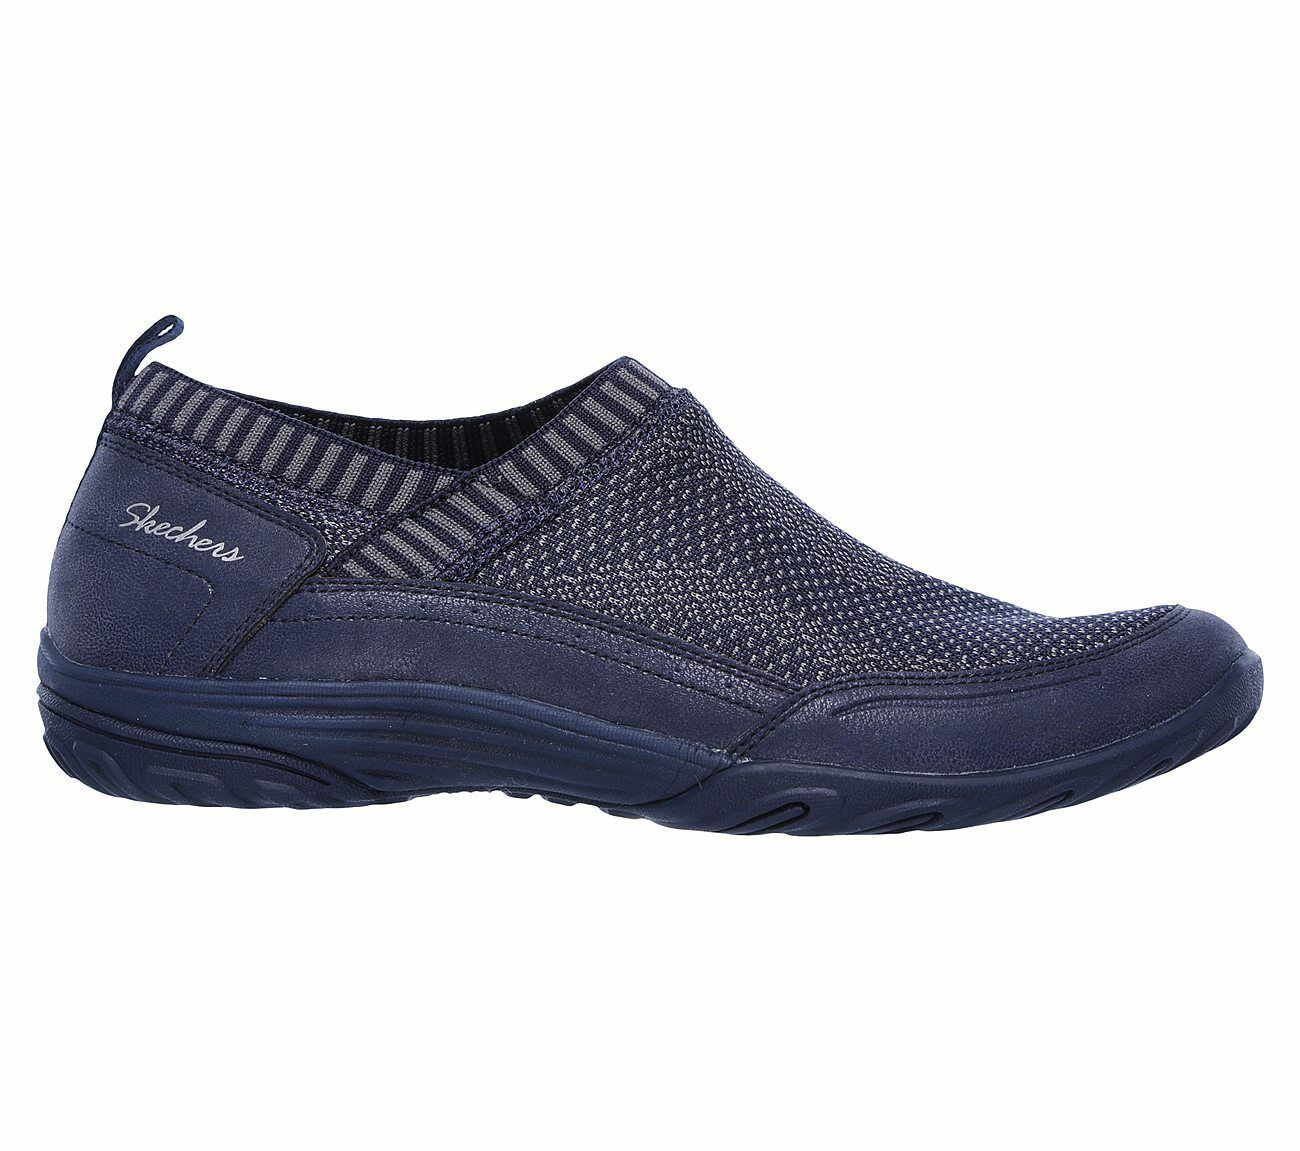 SKechers Empress  Resurge Ladies shoes  US 6 REF 2424